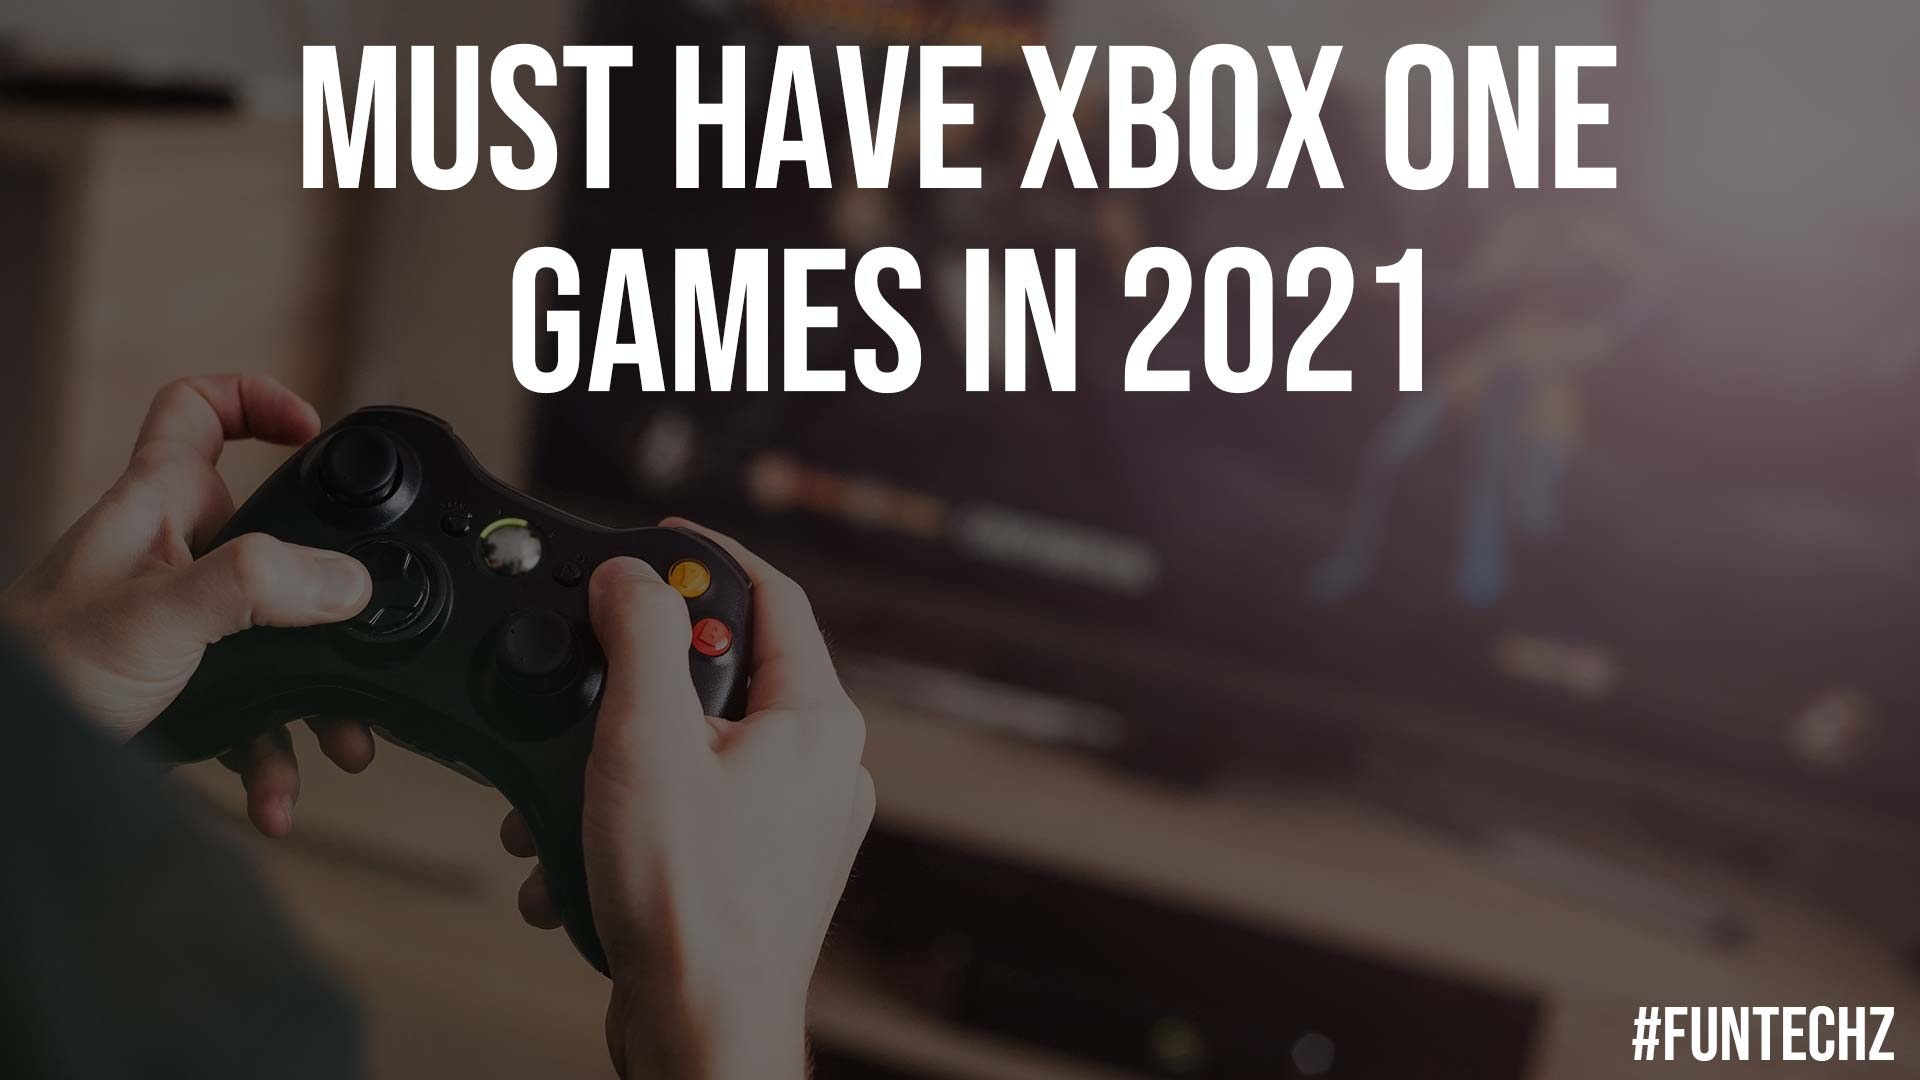 Must Have Xbox One Games in 2021